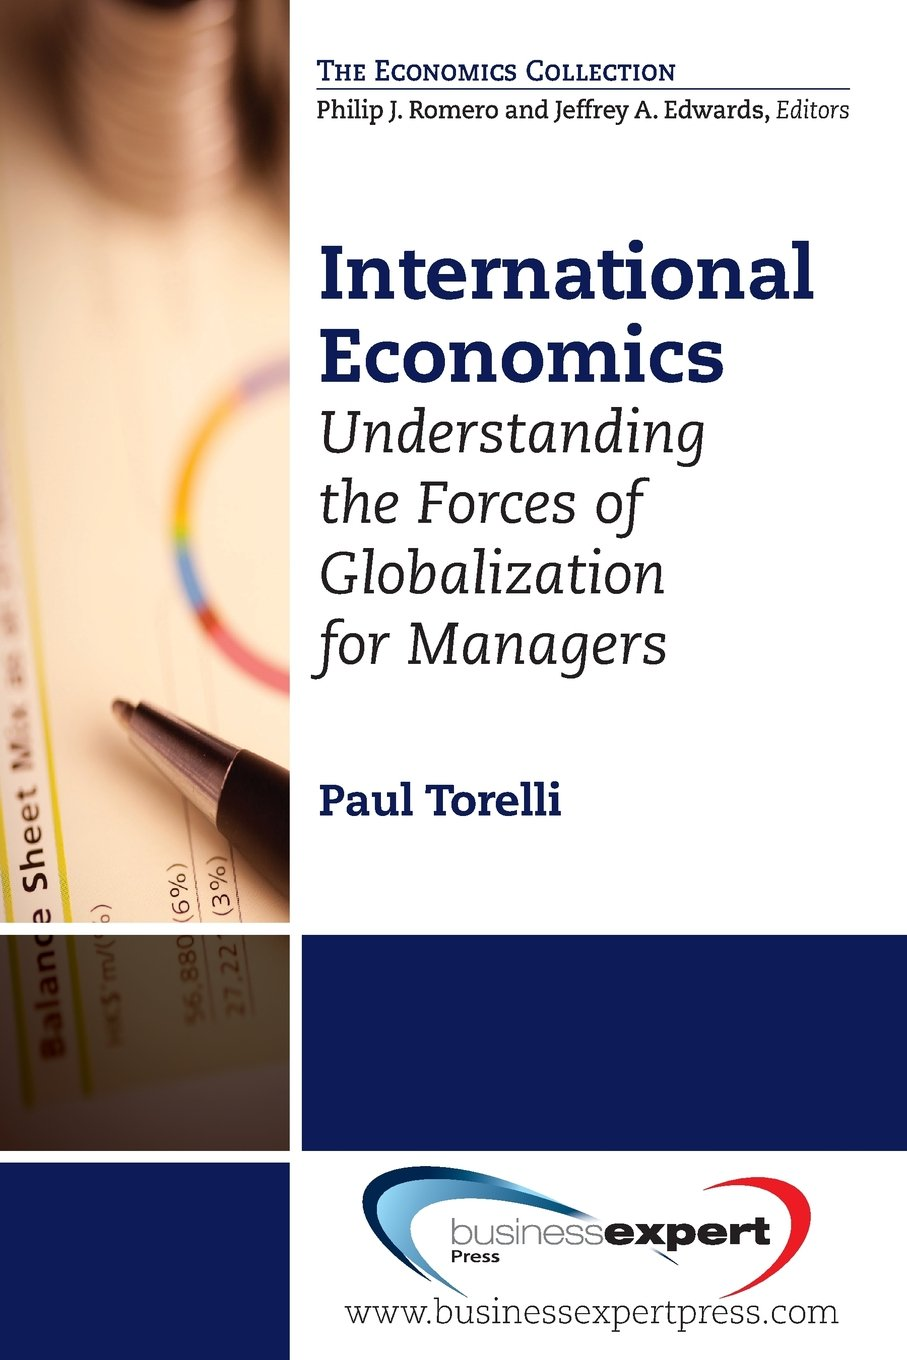 International Economics: Understanding the Forces of Globalization for Managers (Economics Collection)